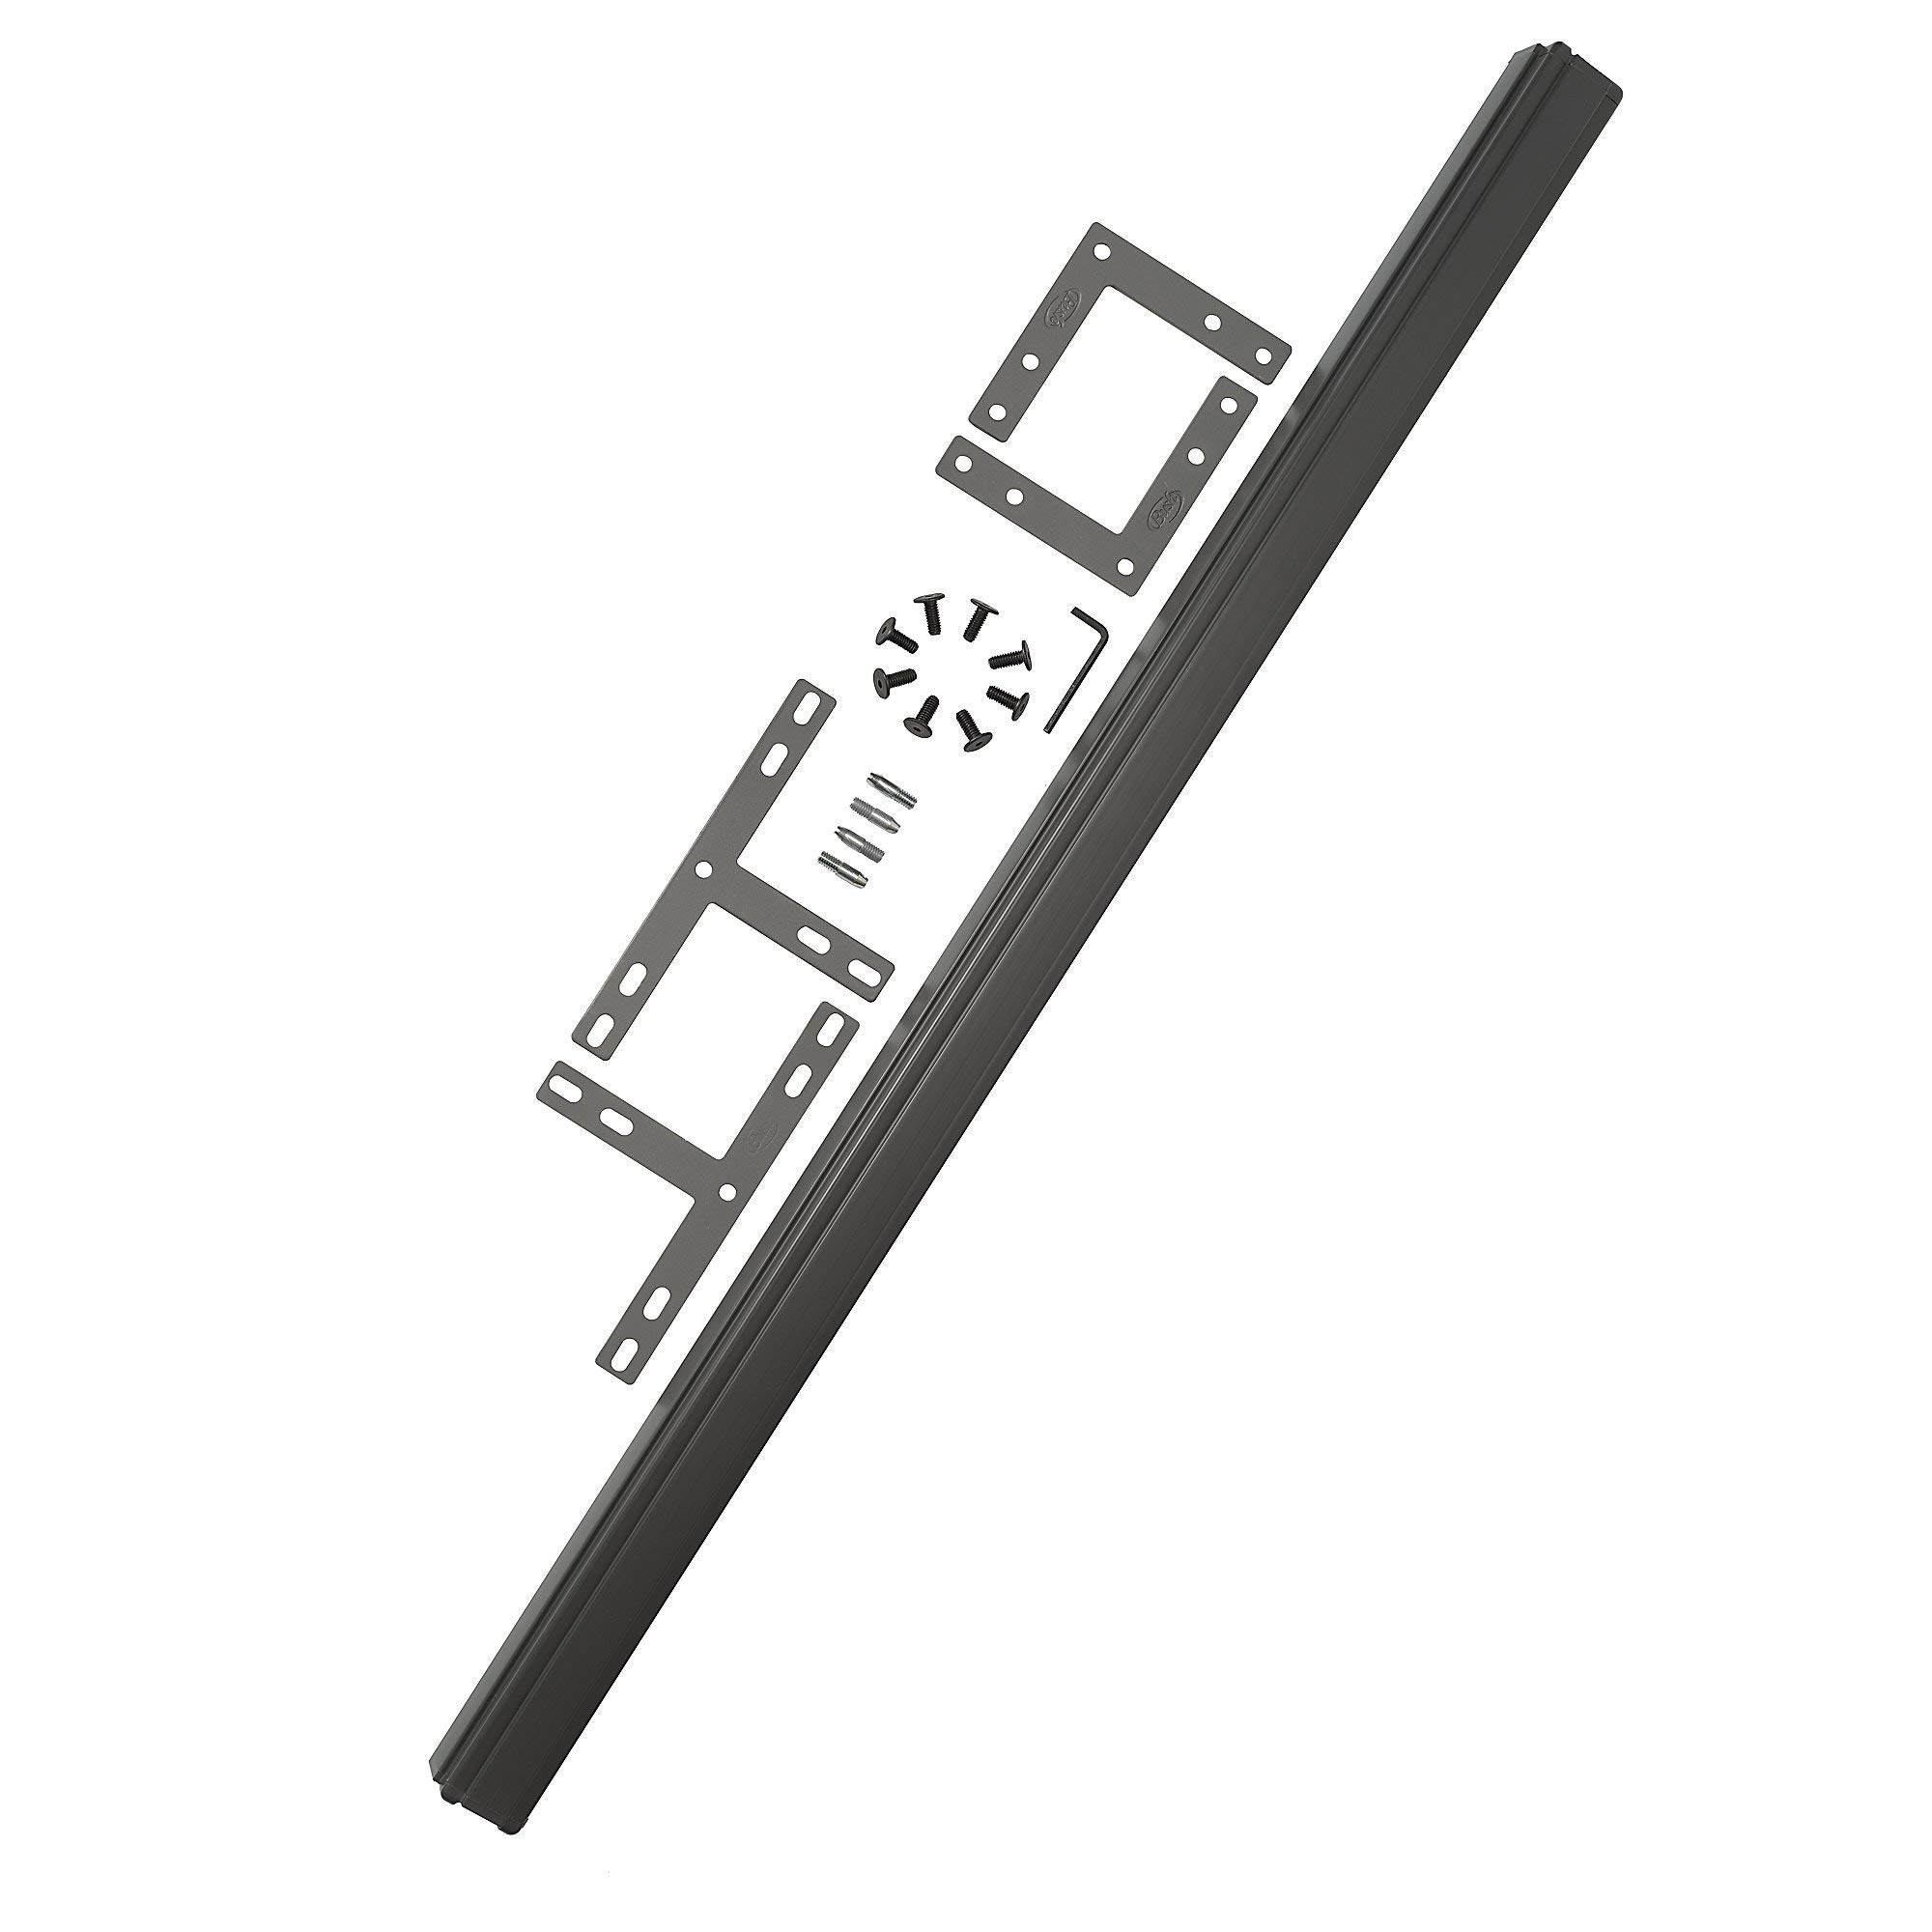 Bush Business Furniture ProPanels - 2 way or 3 way Connector (for 66H Panels) in Slate by Bush Business Furniture